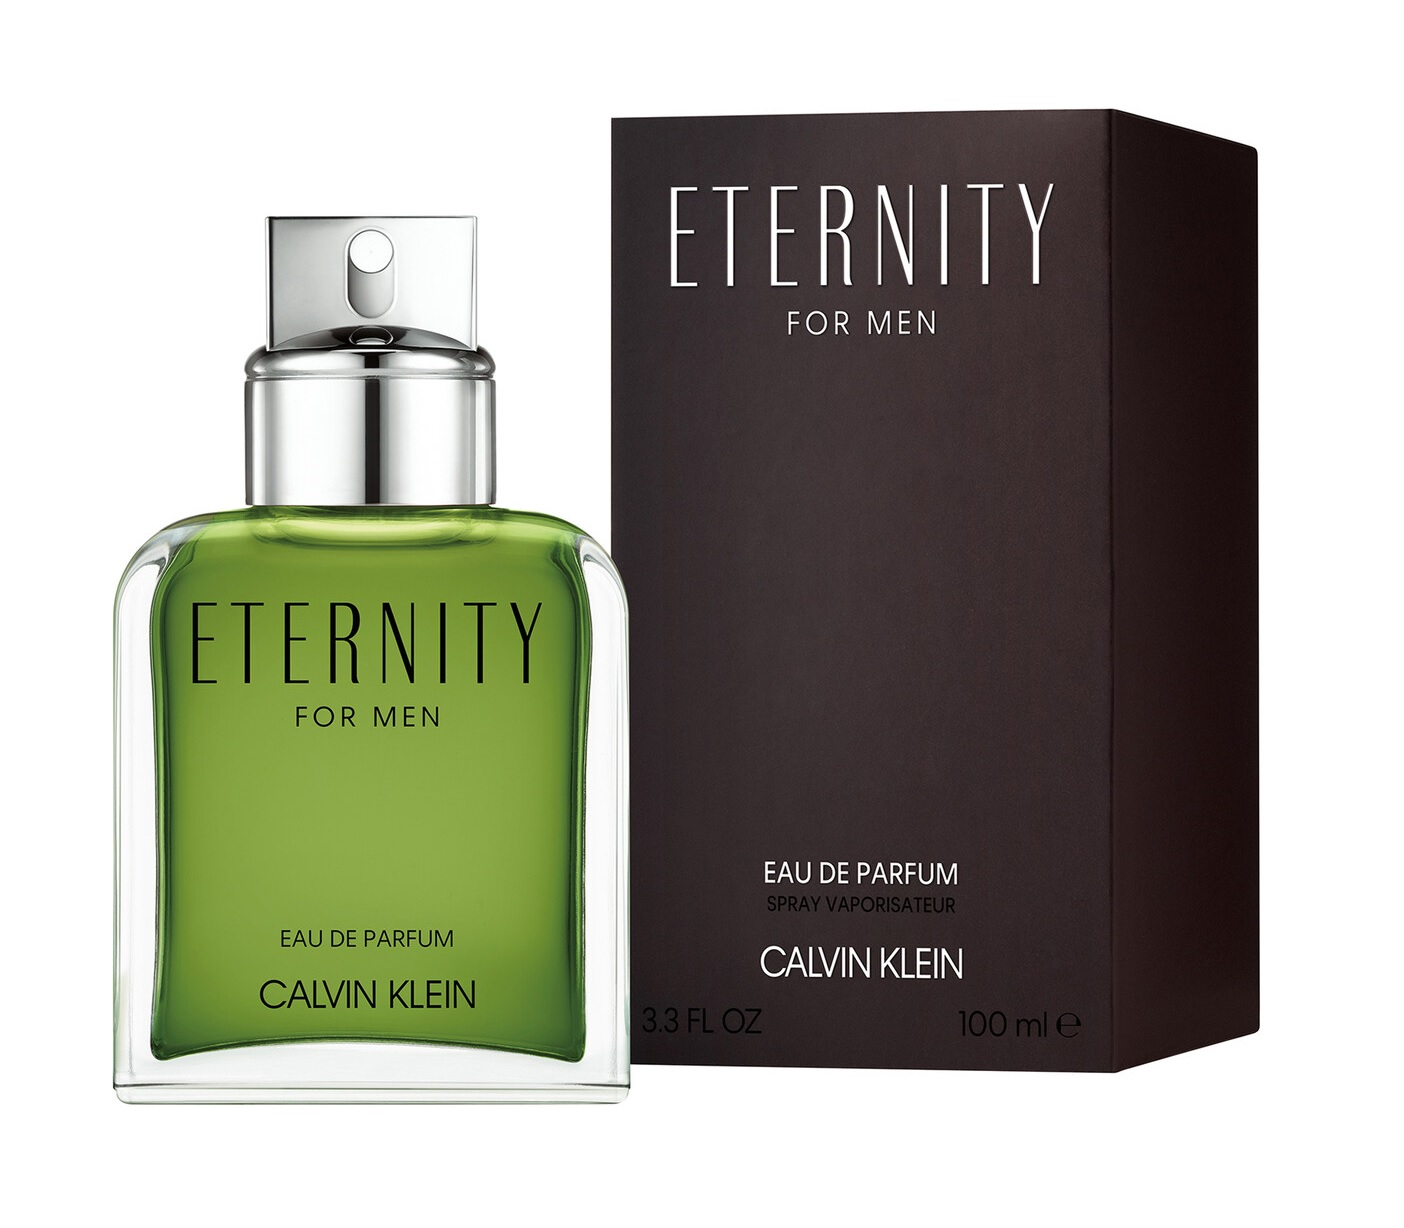 Calvin Klein Eternity for Men Eau de Parfum ~ New Fragrances